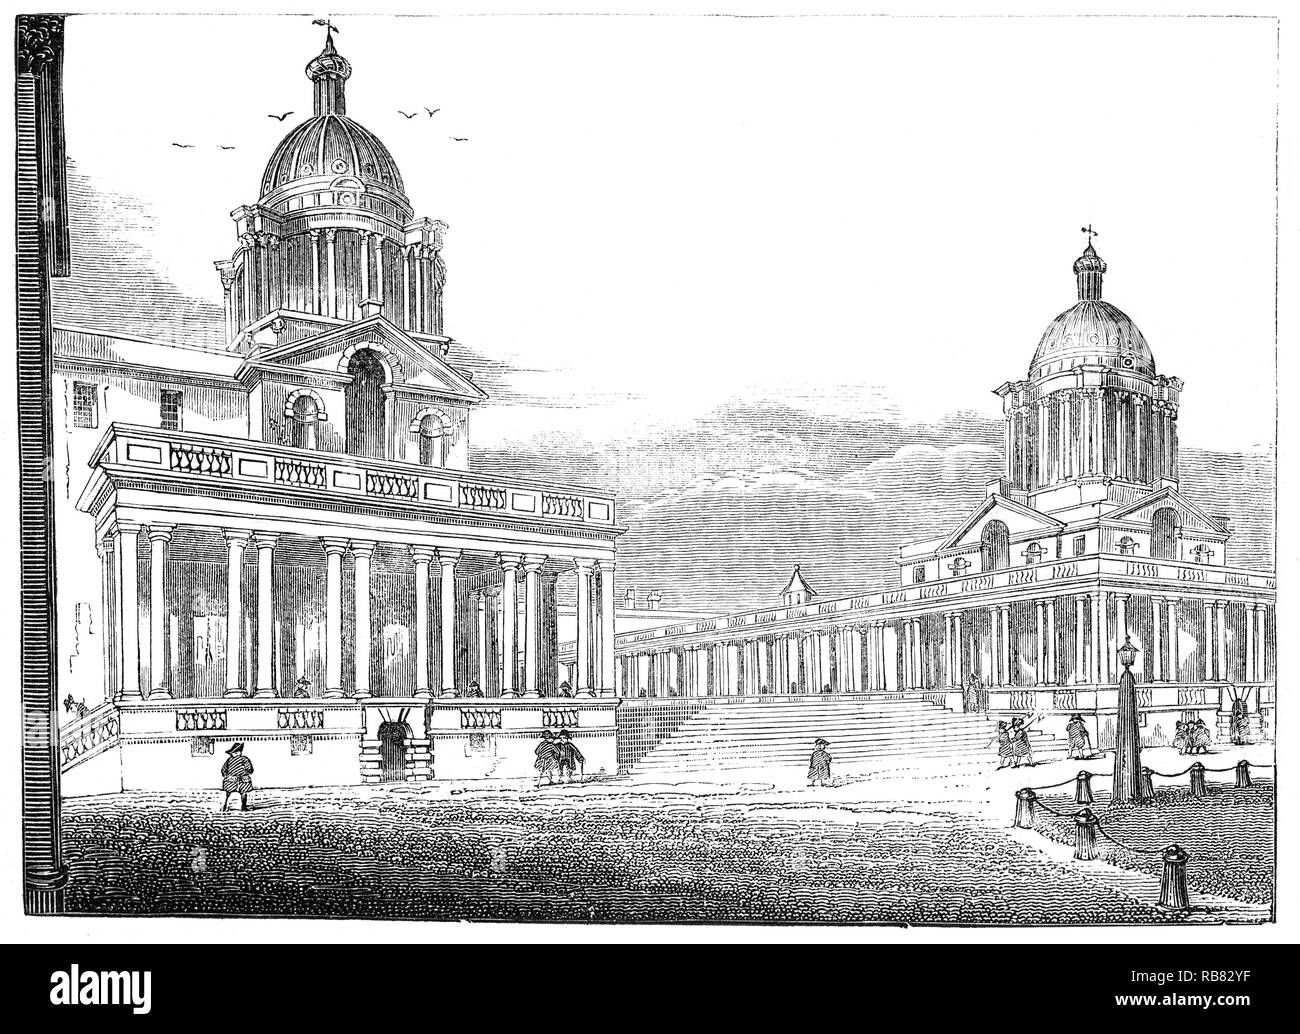 Greenwich Hospital was created as the Royal Hospital for Seamen at Greenwich on the instructions of Queen Mary II, who had been inspired by the sight of wounded sailors returning from the Battle of La Hogue in 1692. She ordered the King Charles wing of the palace to be remodelled as a naval hospital to provide a counterpart for the Chelsea Hospital for soldiers. Sir Christopher Wren and his assistant Nicholas Hawksmoor gave their services free of charge as architects of the new Royal Hospital. Sir John Vanbrugh succeeded Wren as architect, completing the complex to Wren's original plans - Stock Image